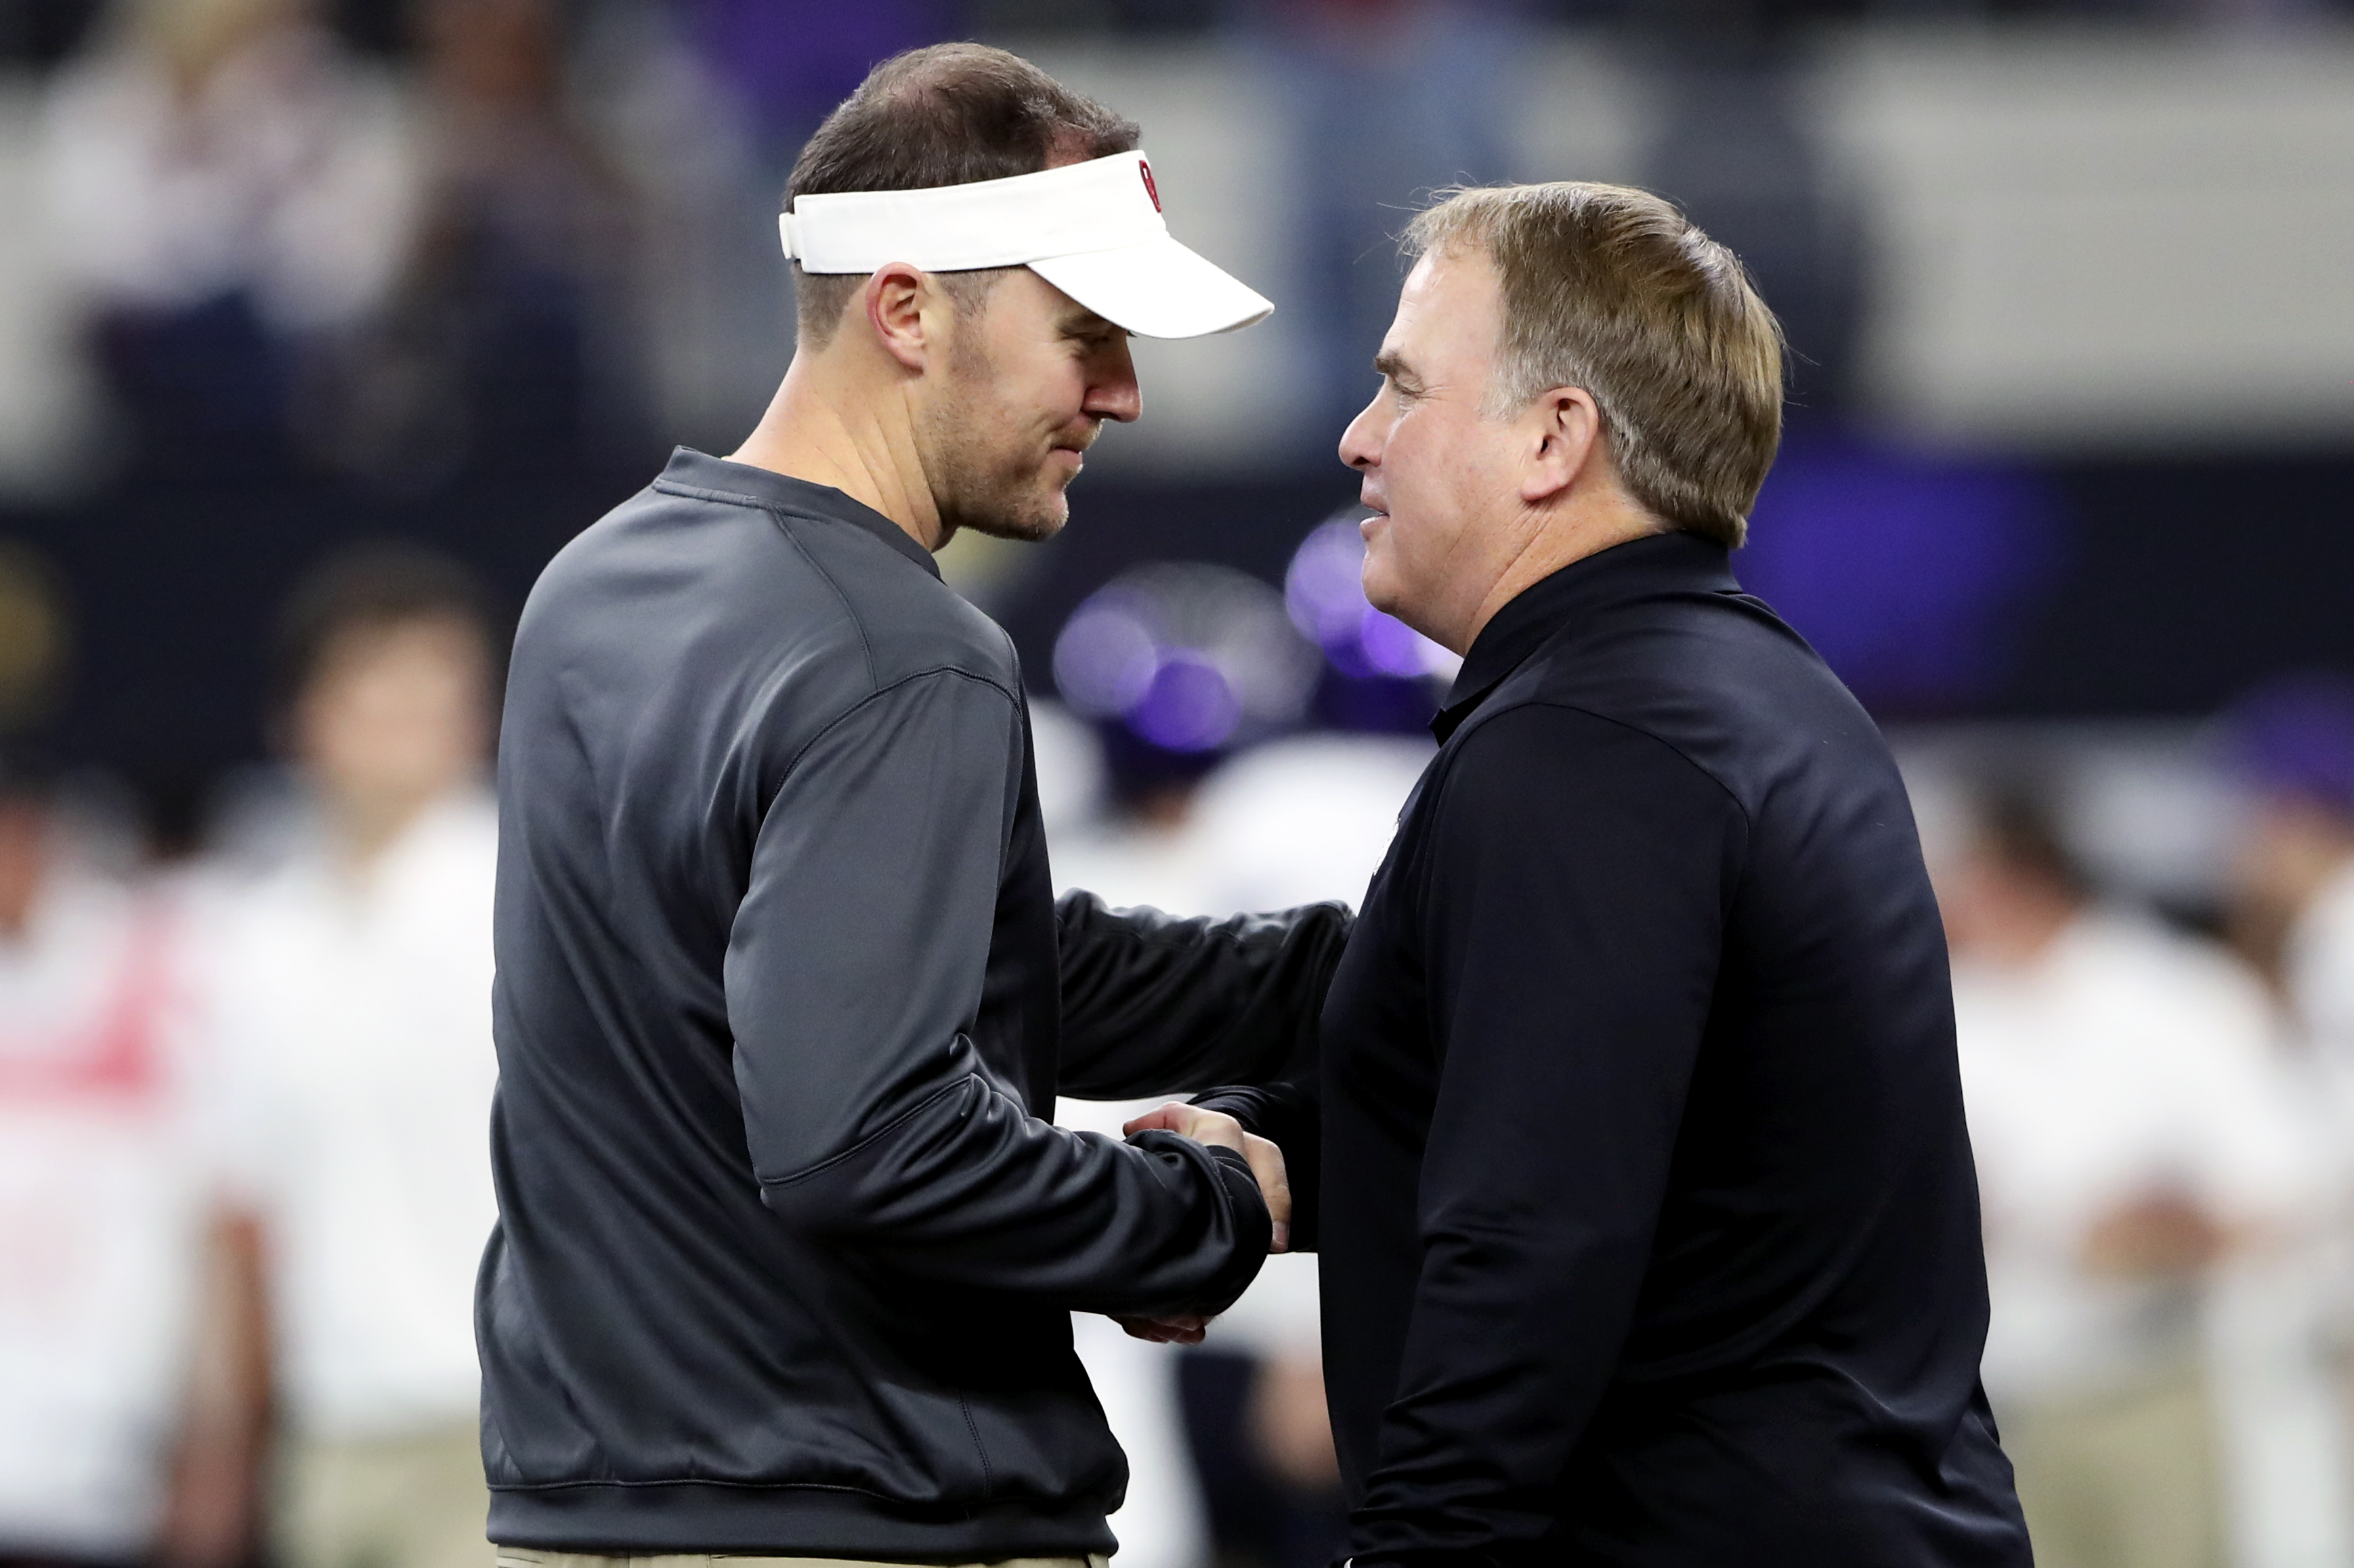 Dec 2, 2017; Arlington, TX, USA; Oklahoma Sooners head coach Lincoln Riley (left) shakes hands with TCU Horned Frogs head coach Gary Patterson (right) before the the Big 12 Championship game at AT&T Stadium. Mandatory Credit: Kevin Jairaj-USA TODAY Sports